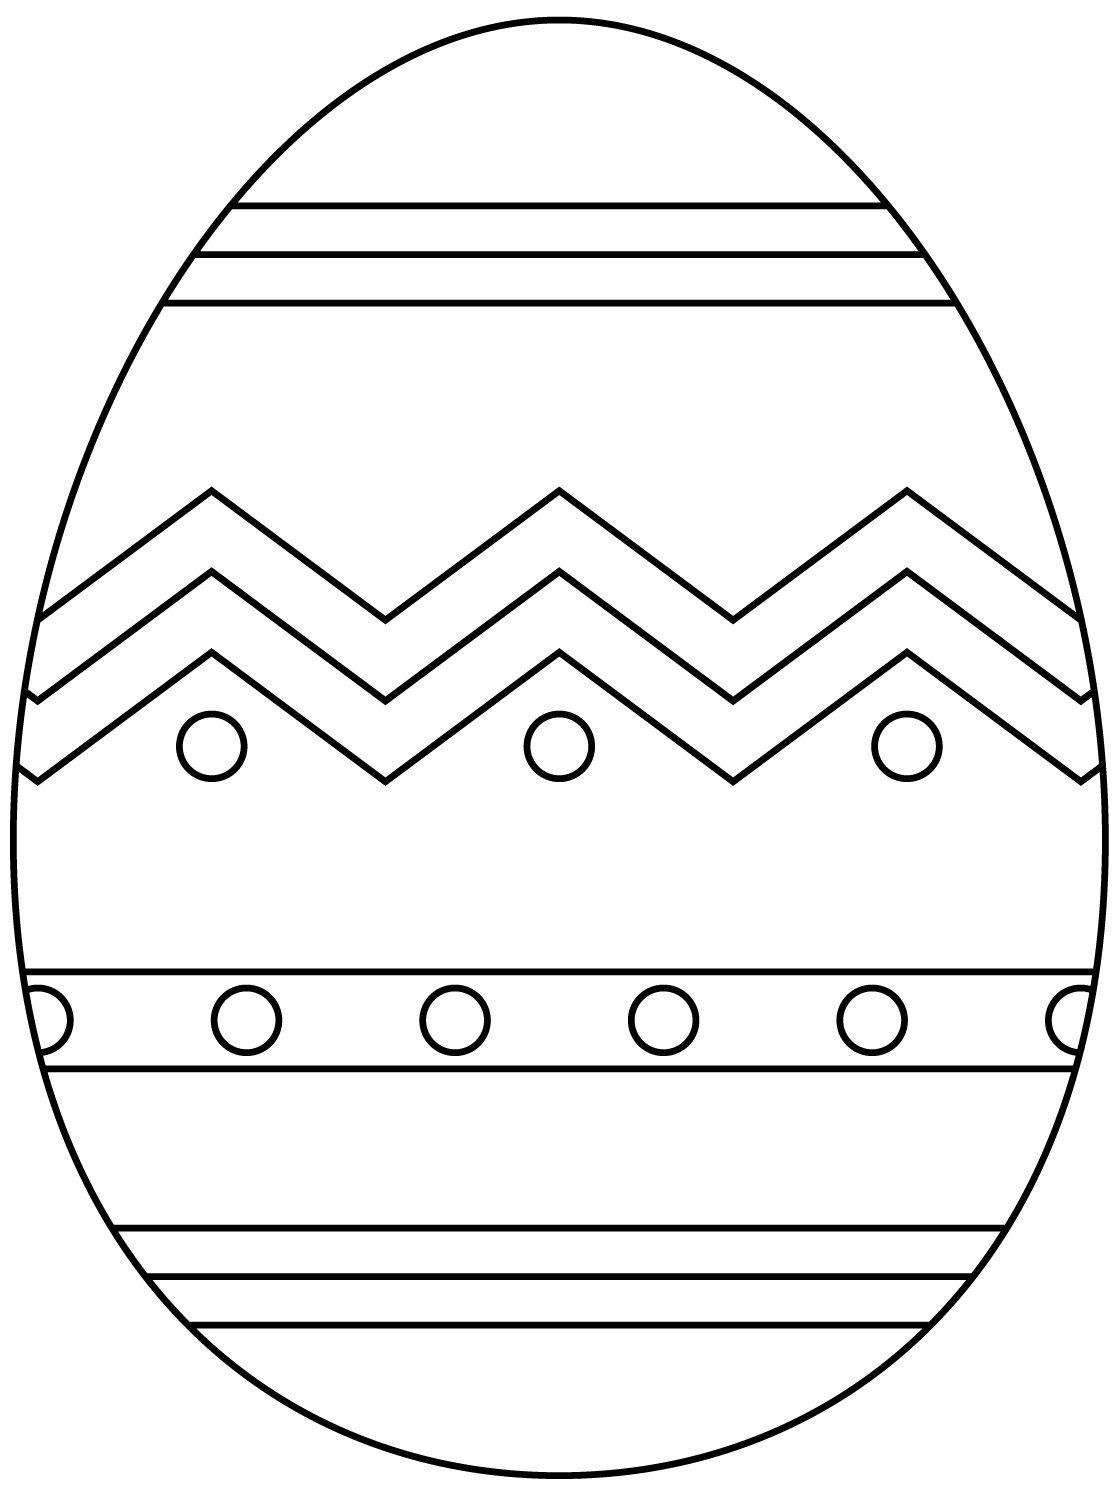 Abstract Cross Coloring Pages : Religious themed easter egg coloring page free